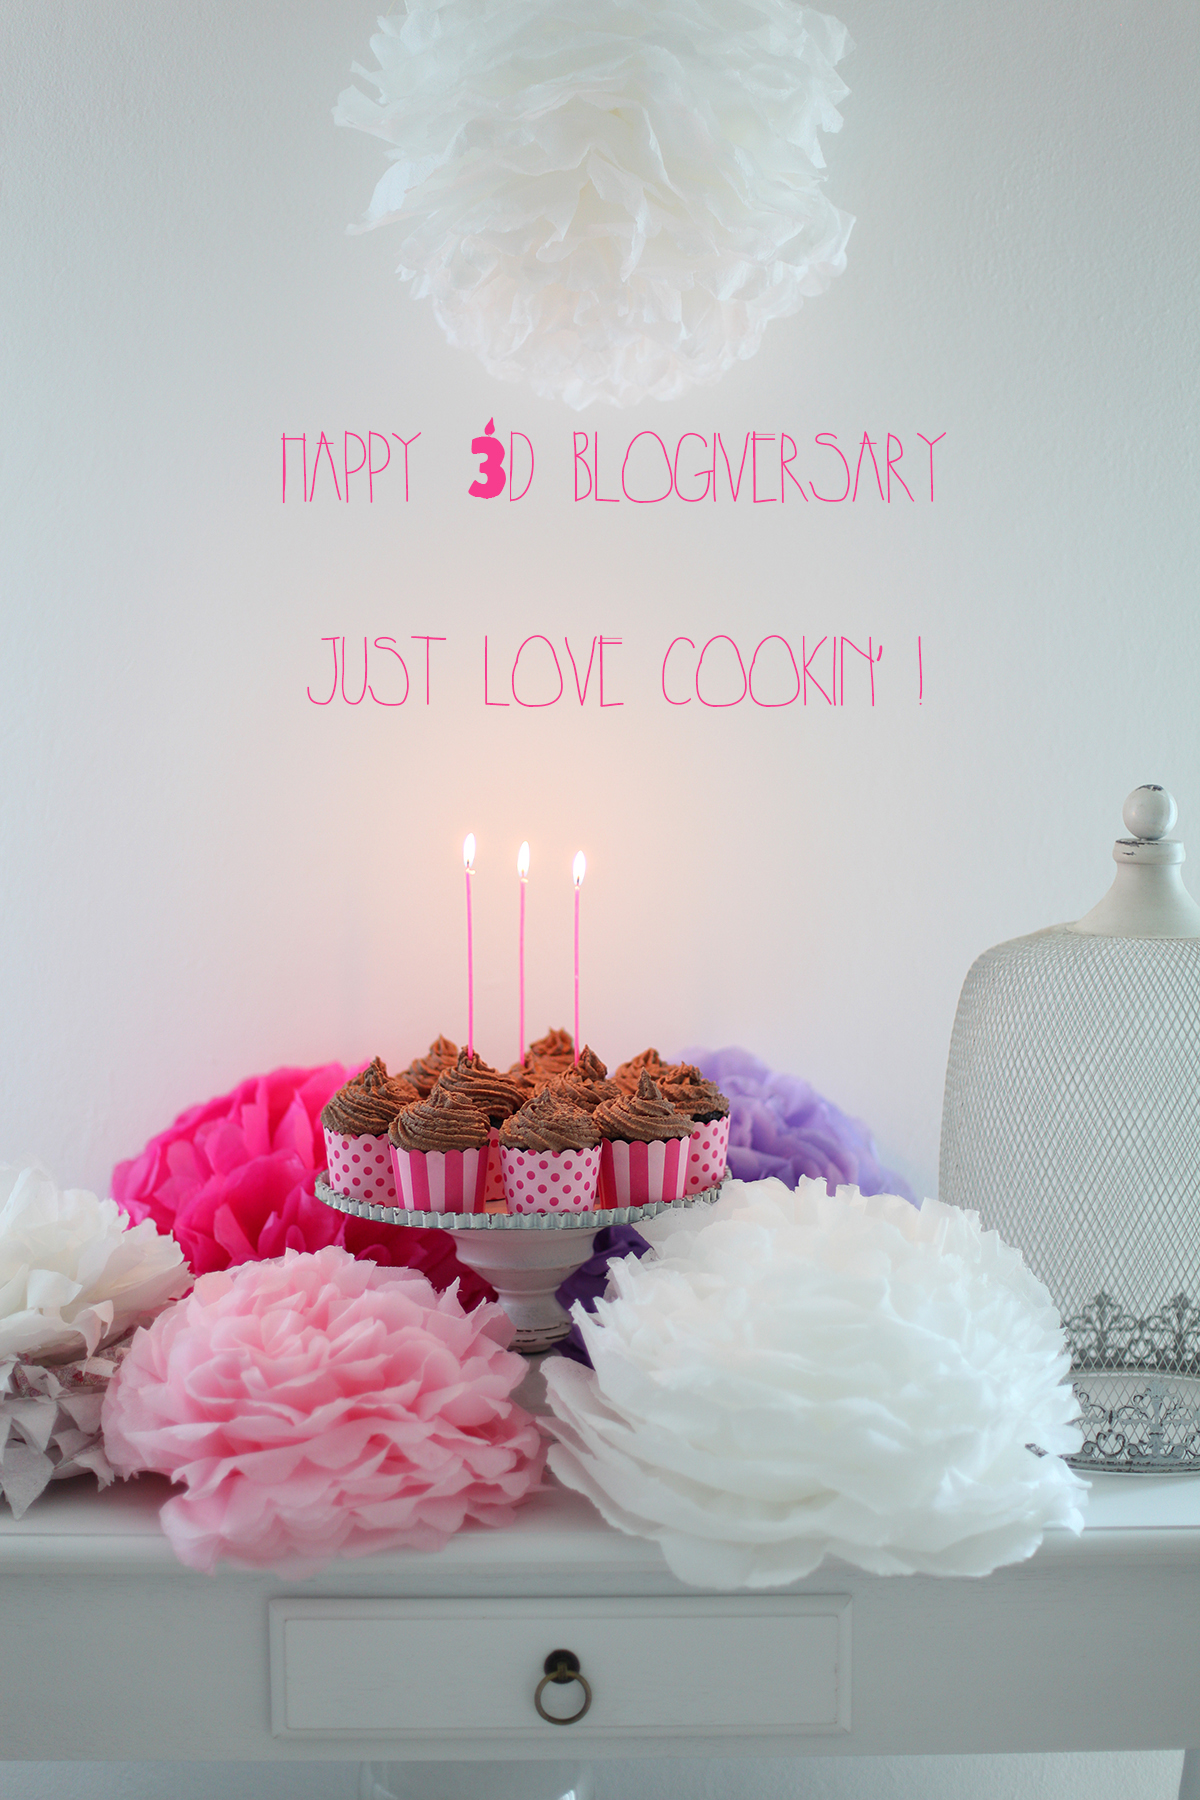 Happy 3d blogiversary and happy b-day to me too!